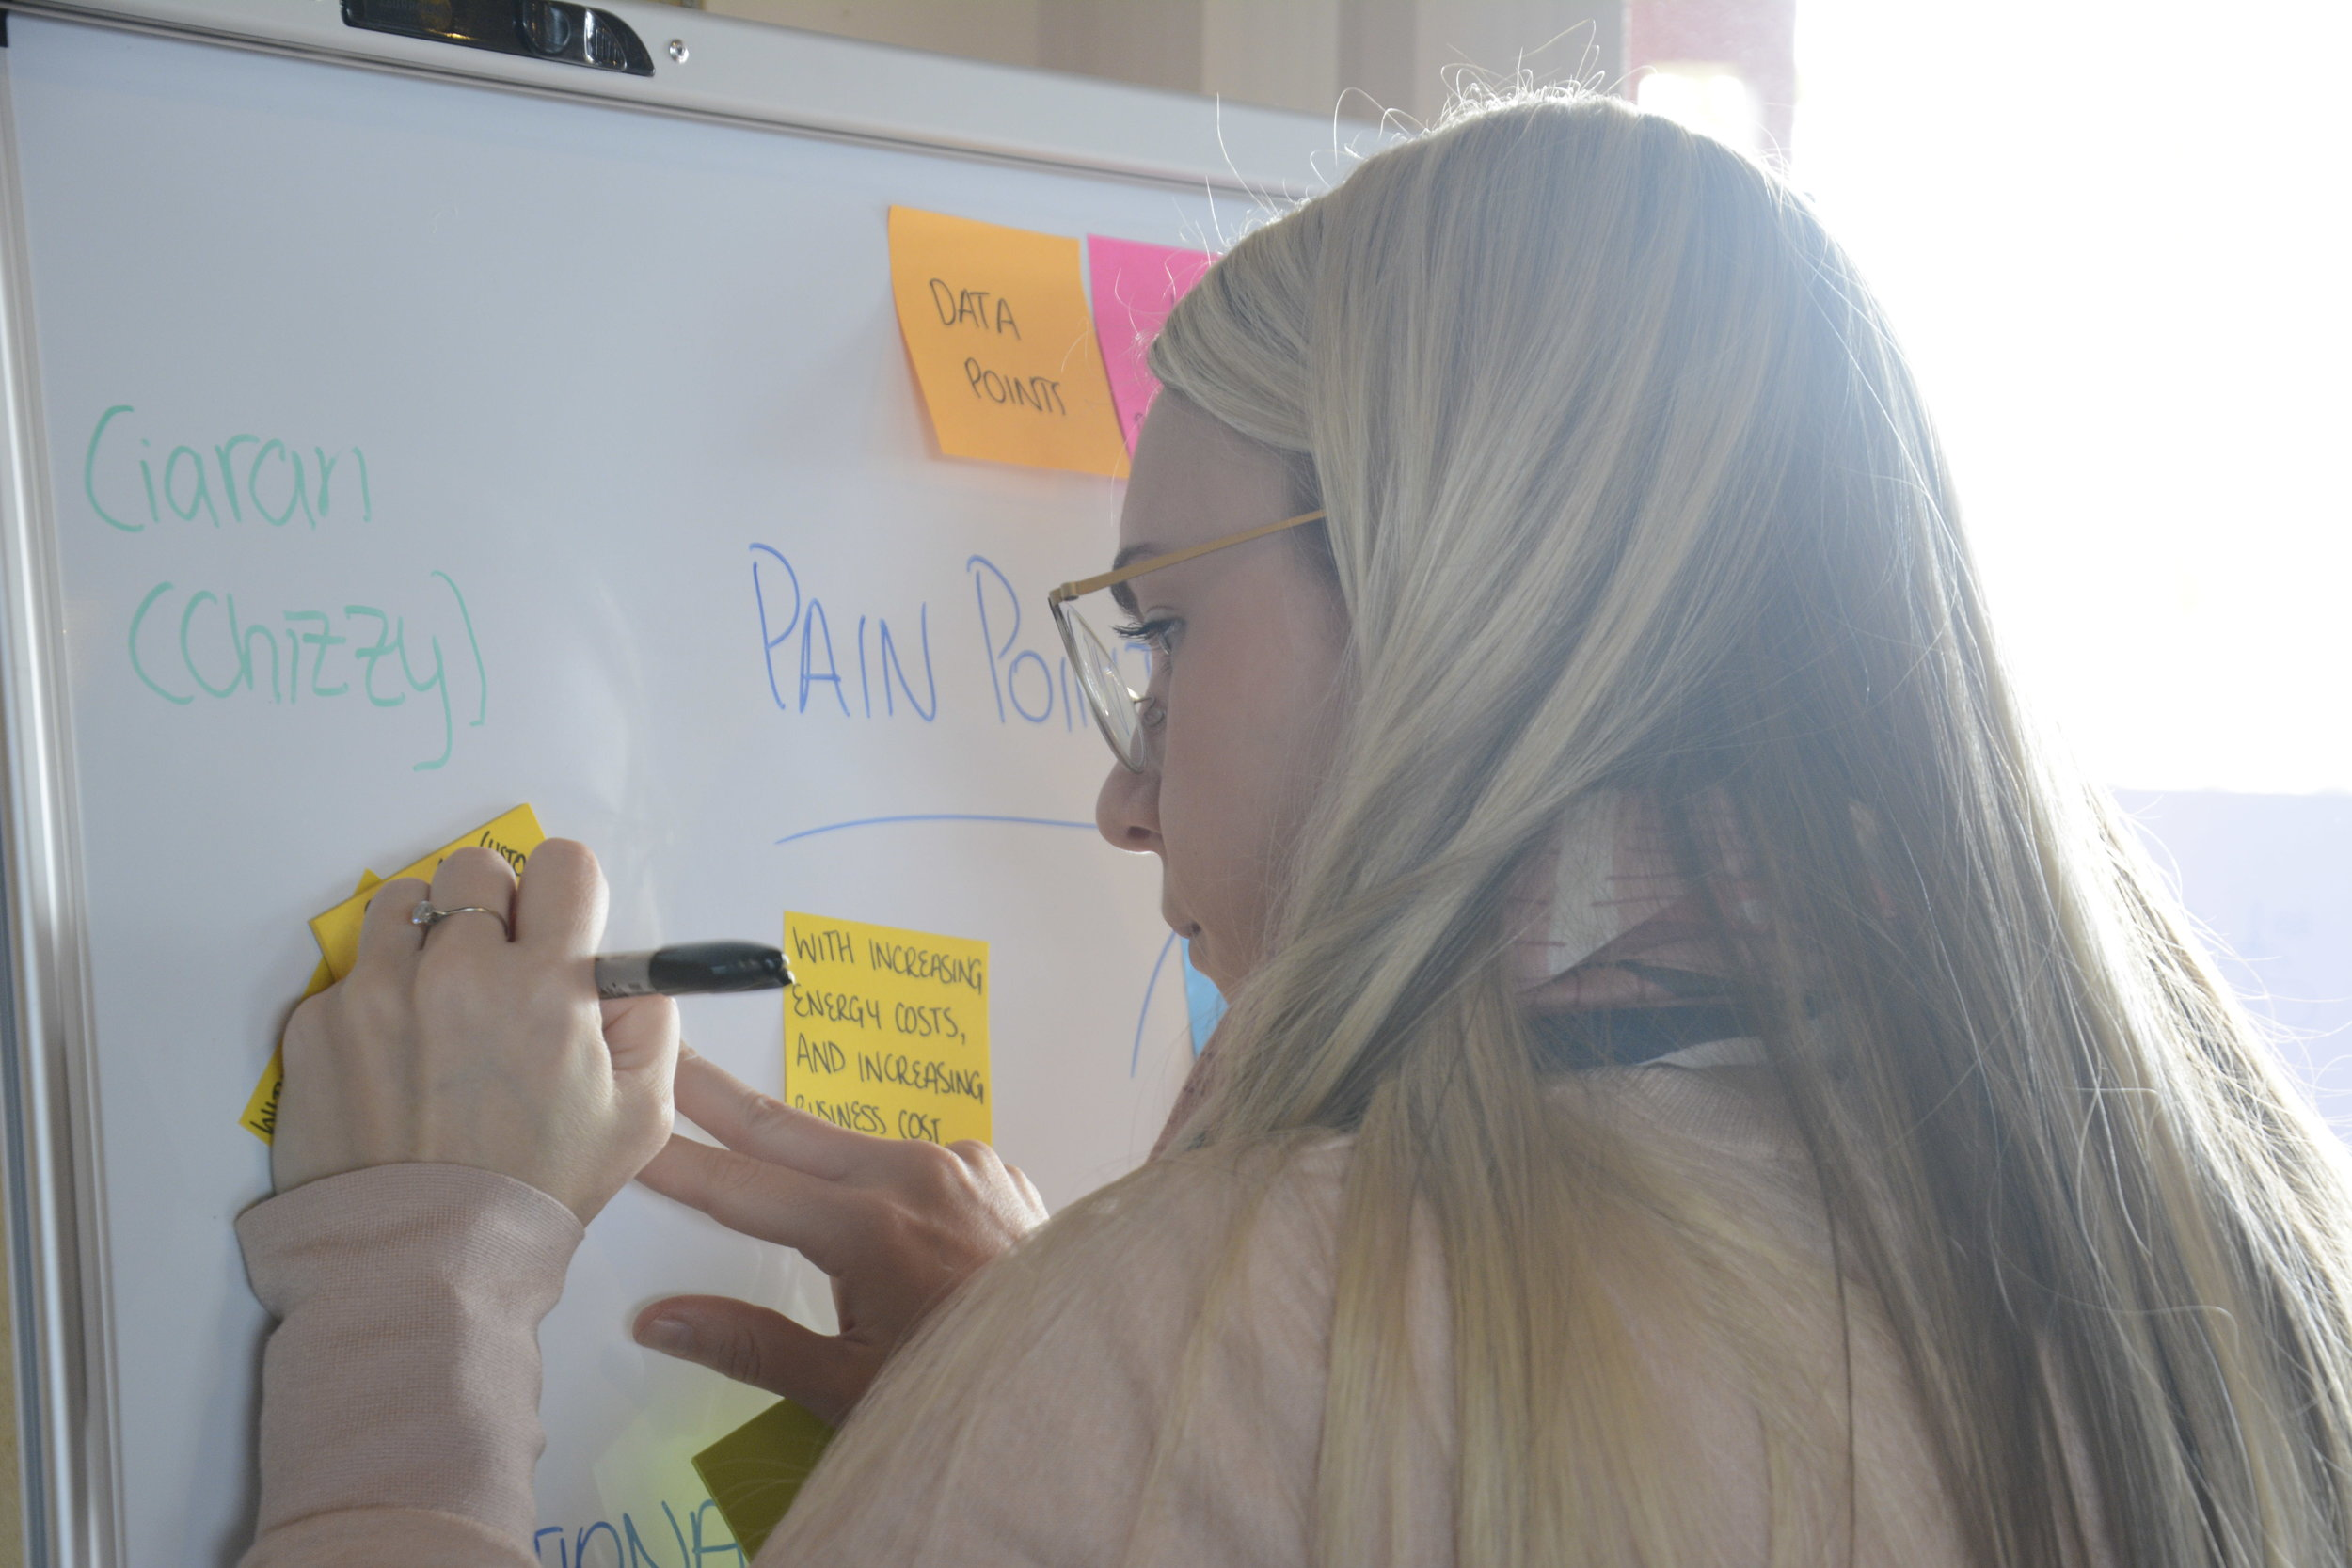 Our teams rifled through questions, answers and sticky notes as they brainstormed their problem statements